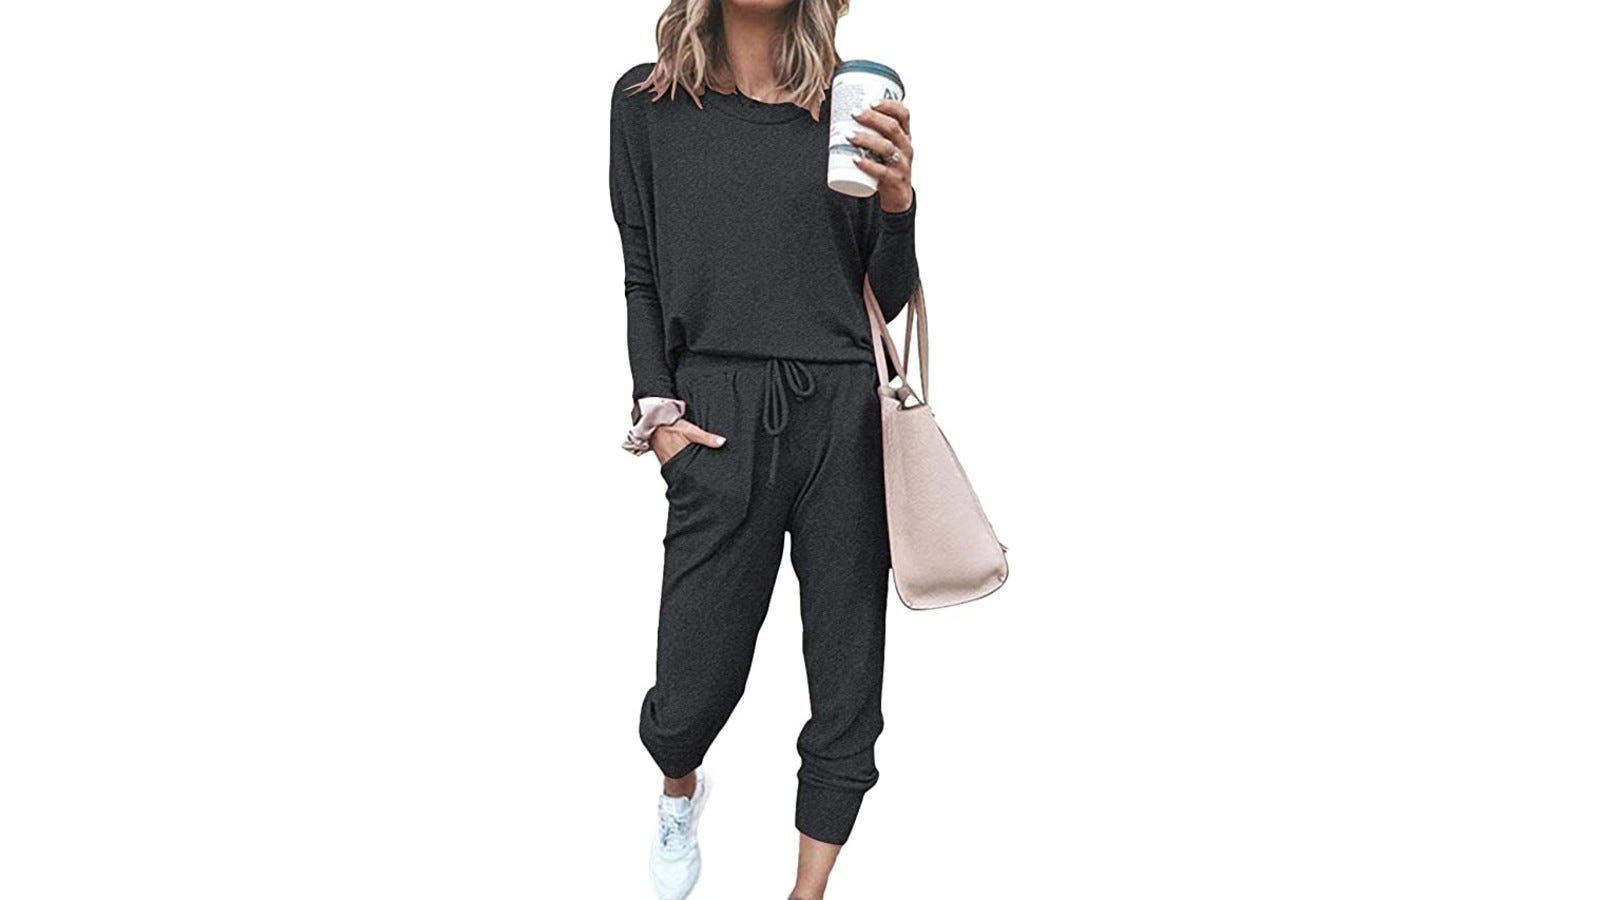 woman wearing black activewear set and holding coffee